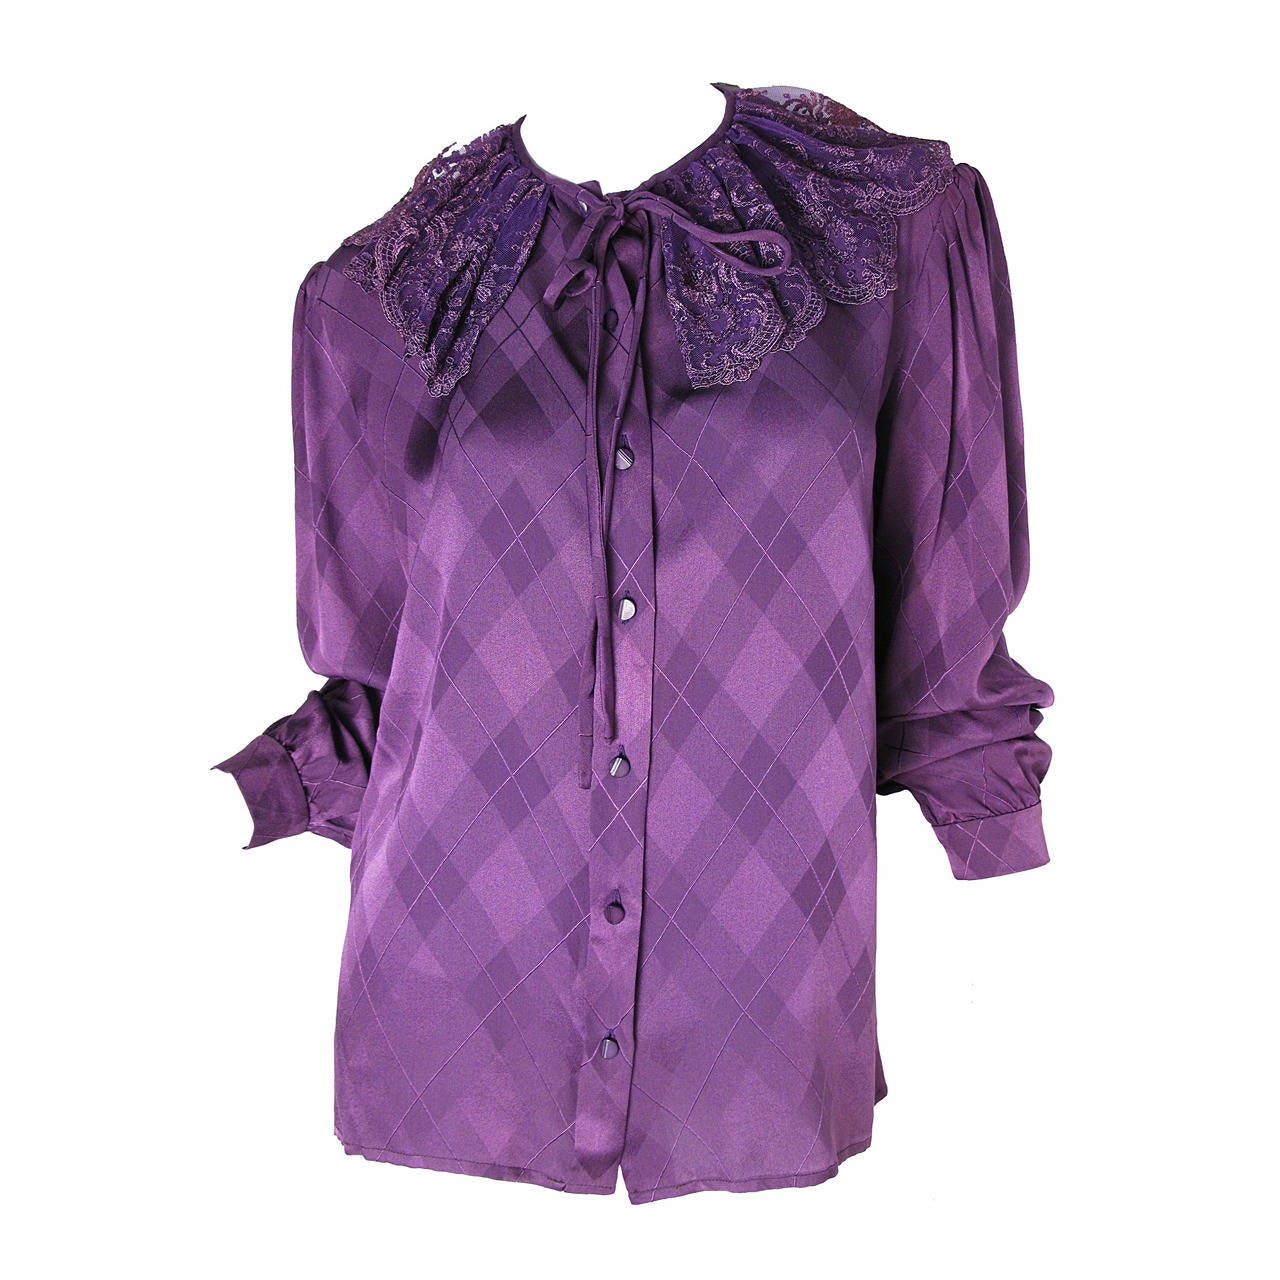 Valentino Purple Silk Blouse with Lace Collar For Sale